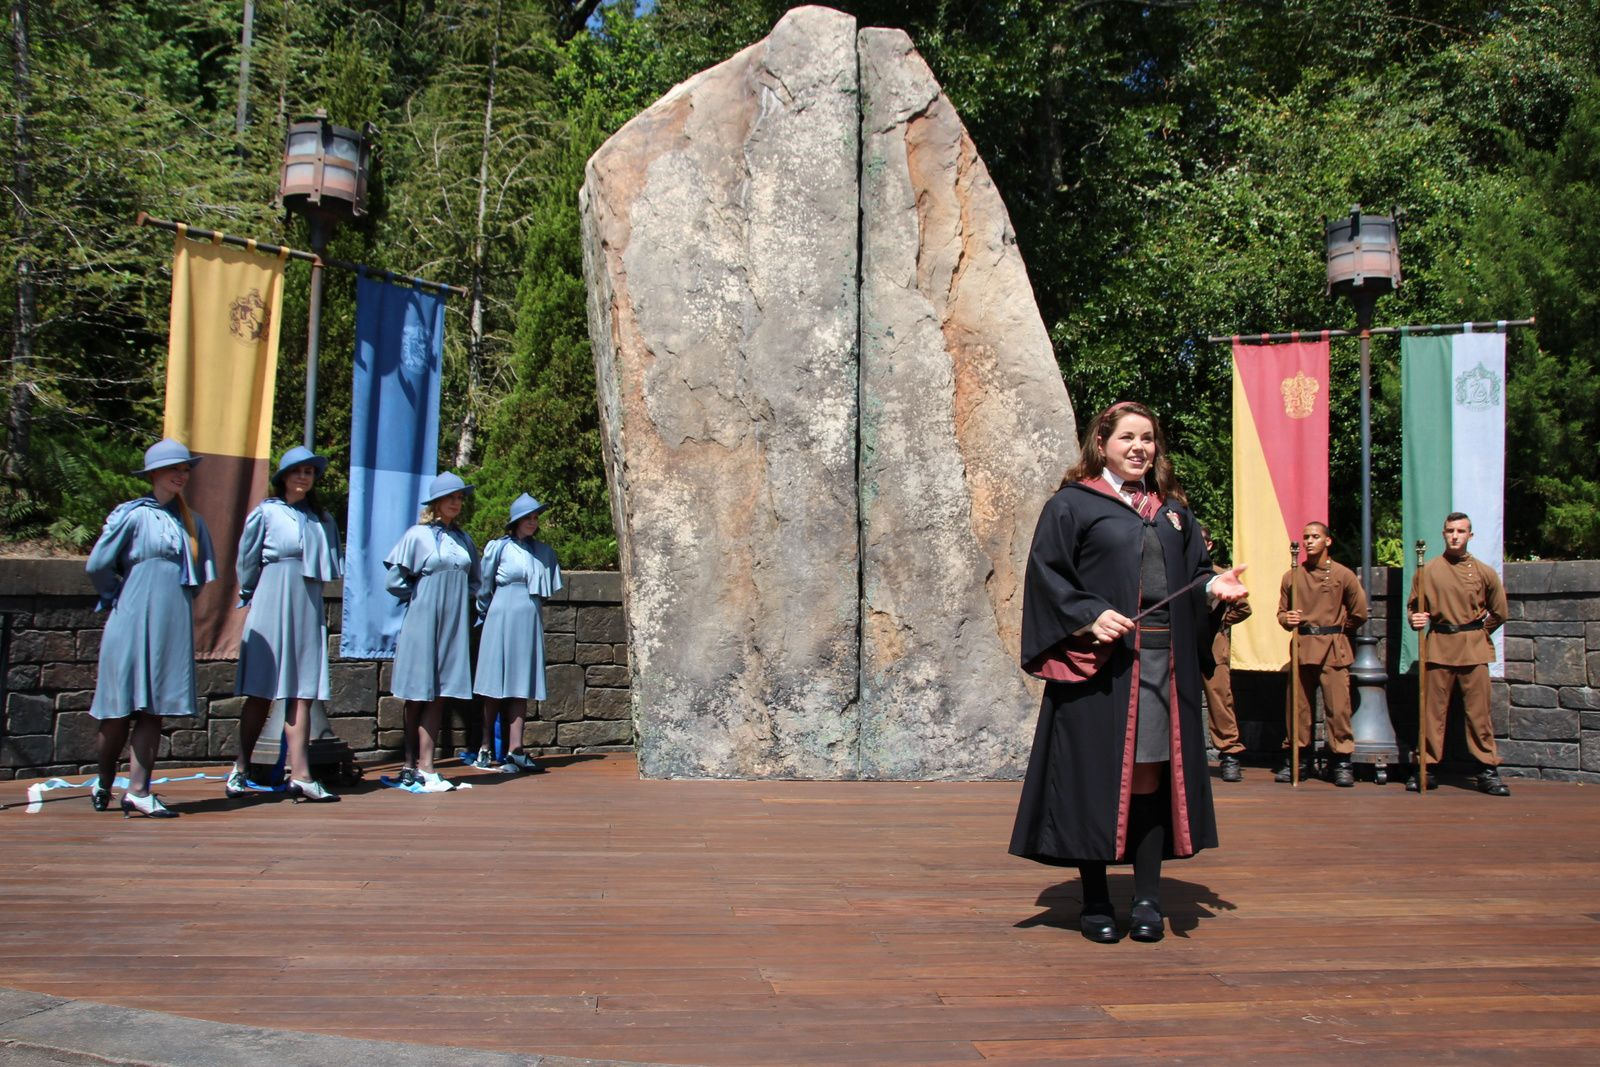 Beauxbâtons et Durmstrang : The Wizarding World of Harry Potter